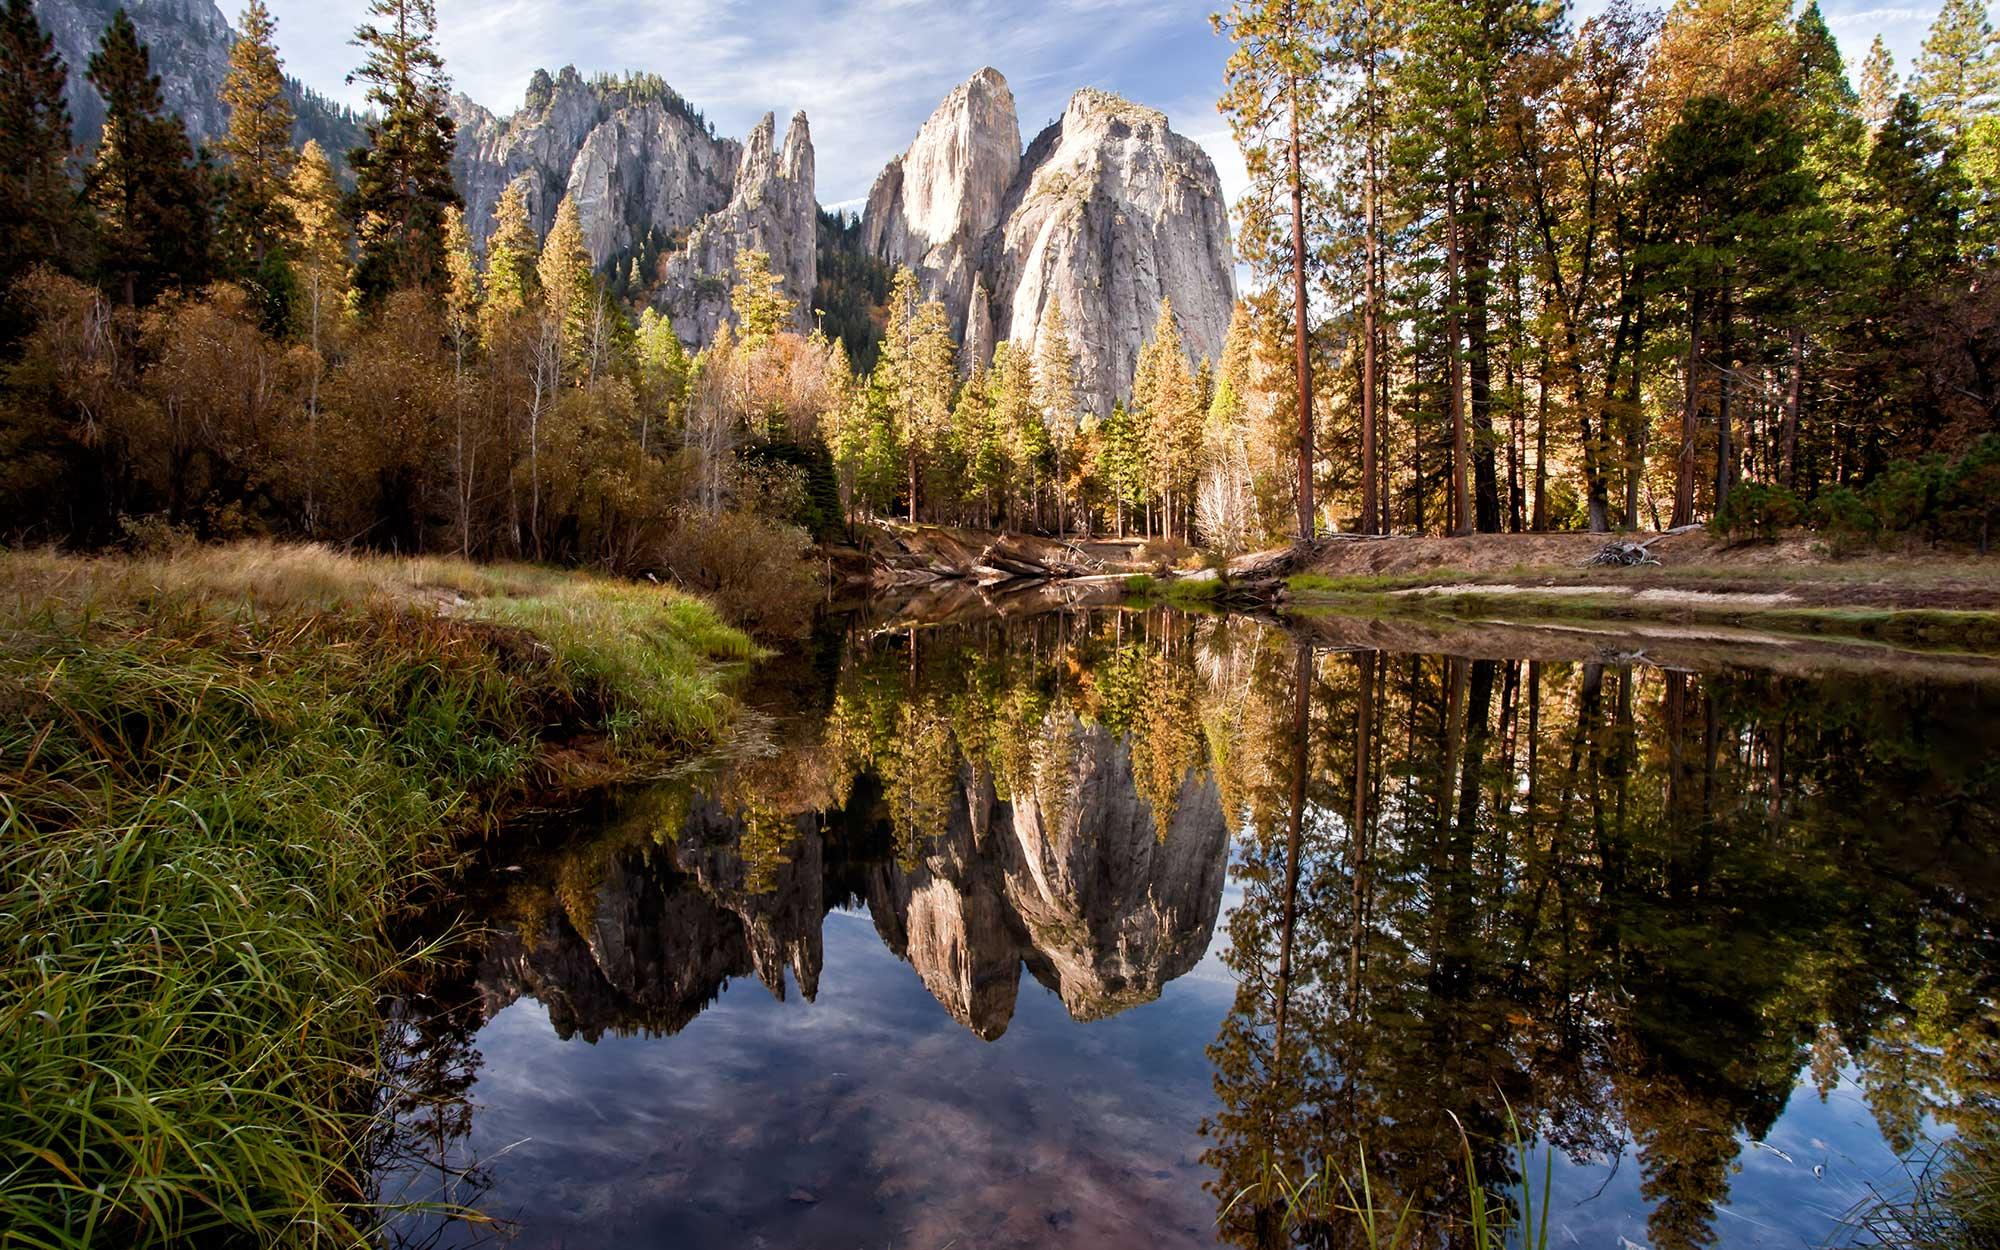 Beautiful cathedral rocks reflected in Merced river in Yosemite National Park.